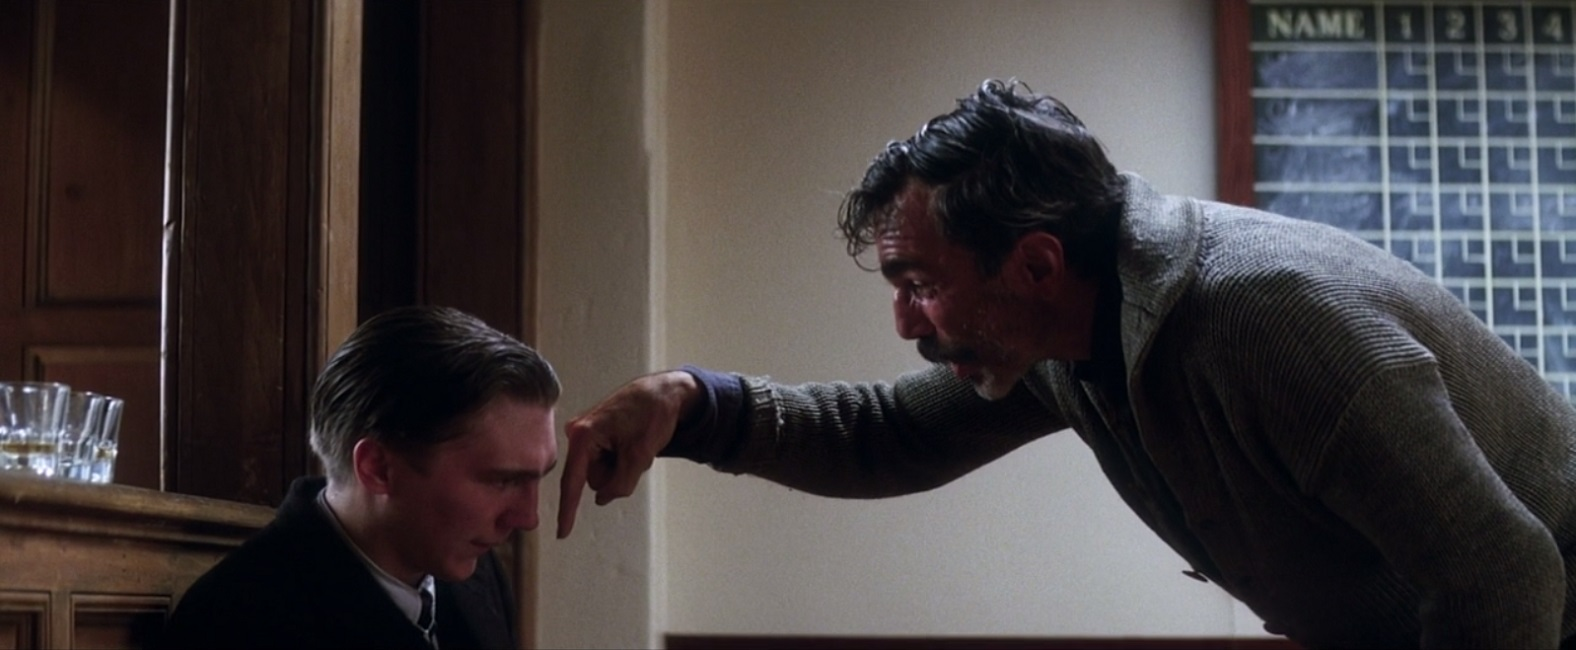 Daniel Day-Lewis & Paul Dano in There Will Be Blood